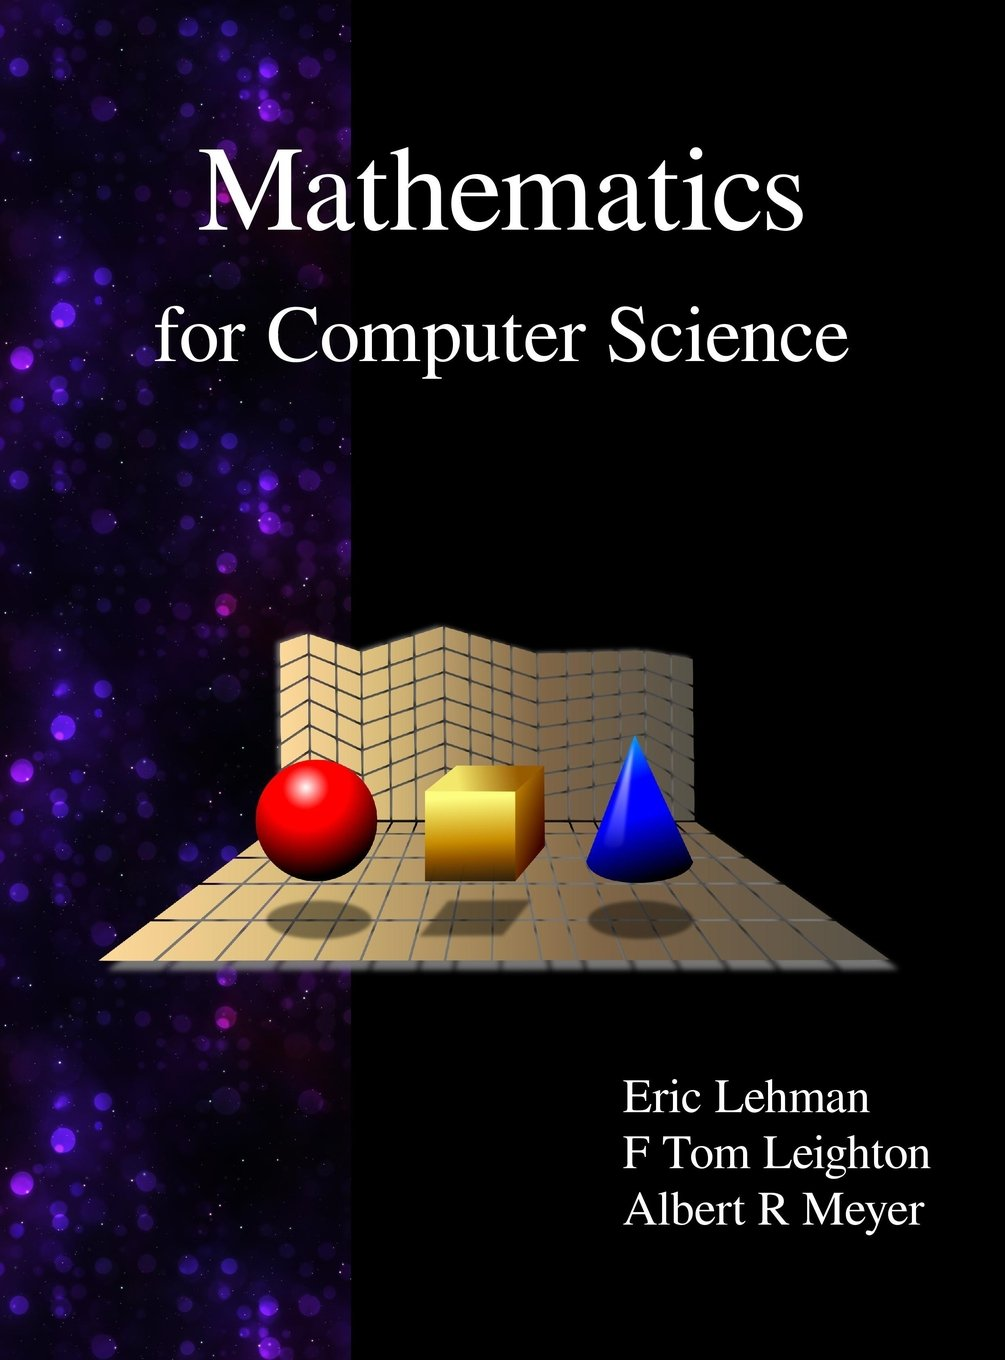 Mathematics for computer science eric lehman f thomson leighton mathematics for computer science eric lehman f thomson leighton albert r meyer 9789888407064 amazon books fandeluxe Choice Image